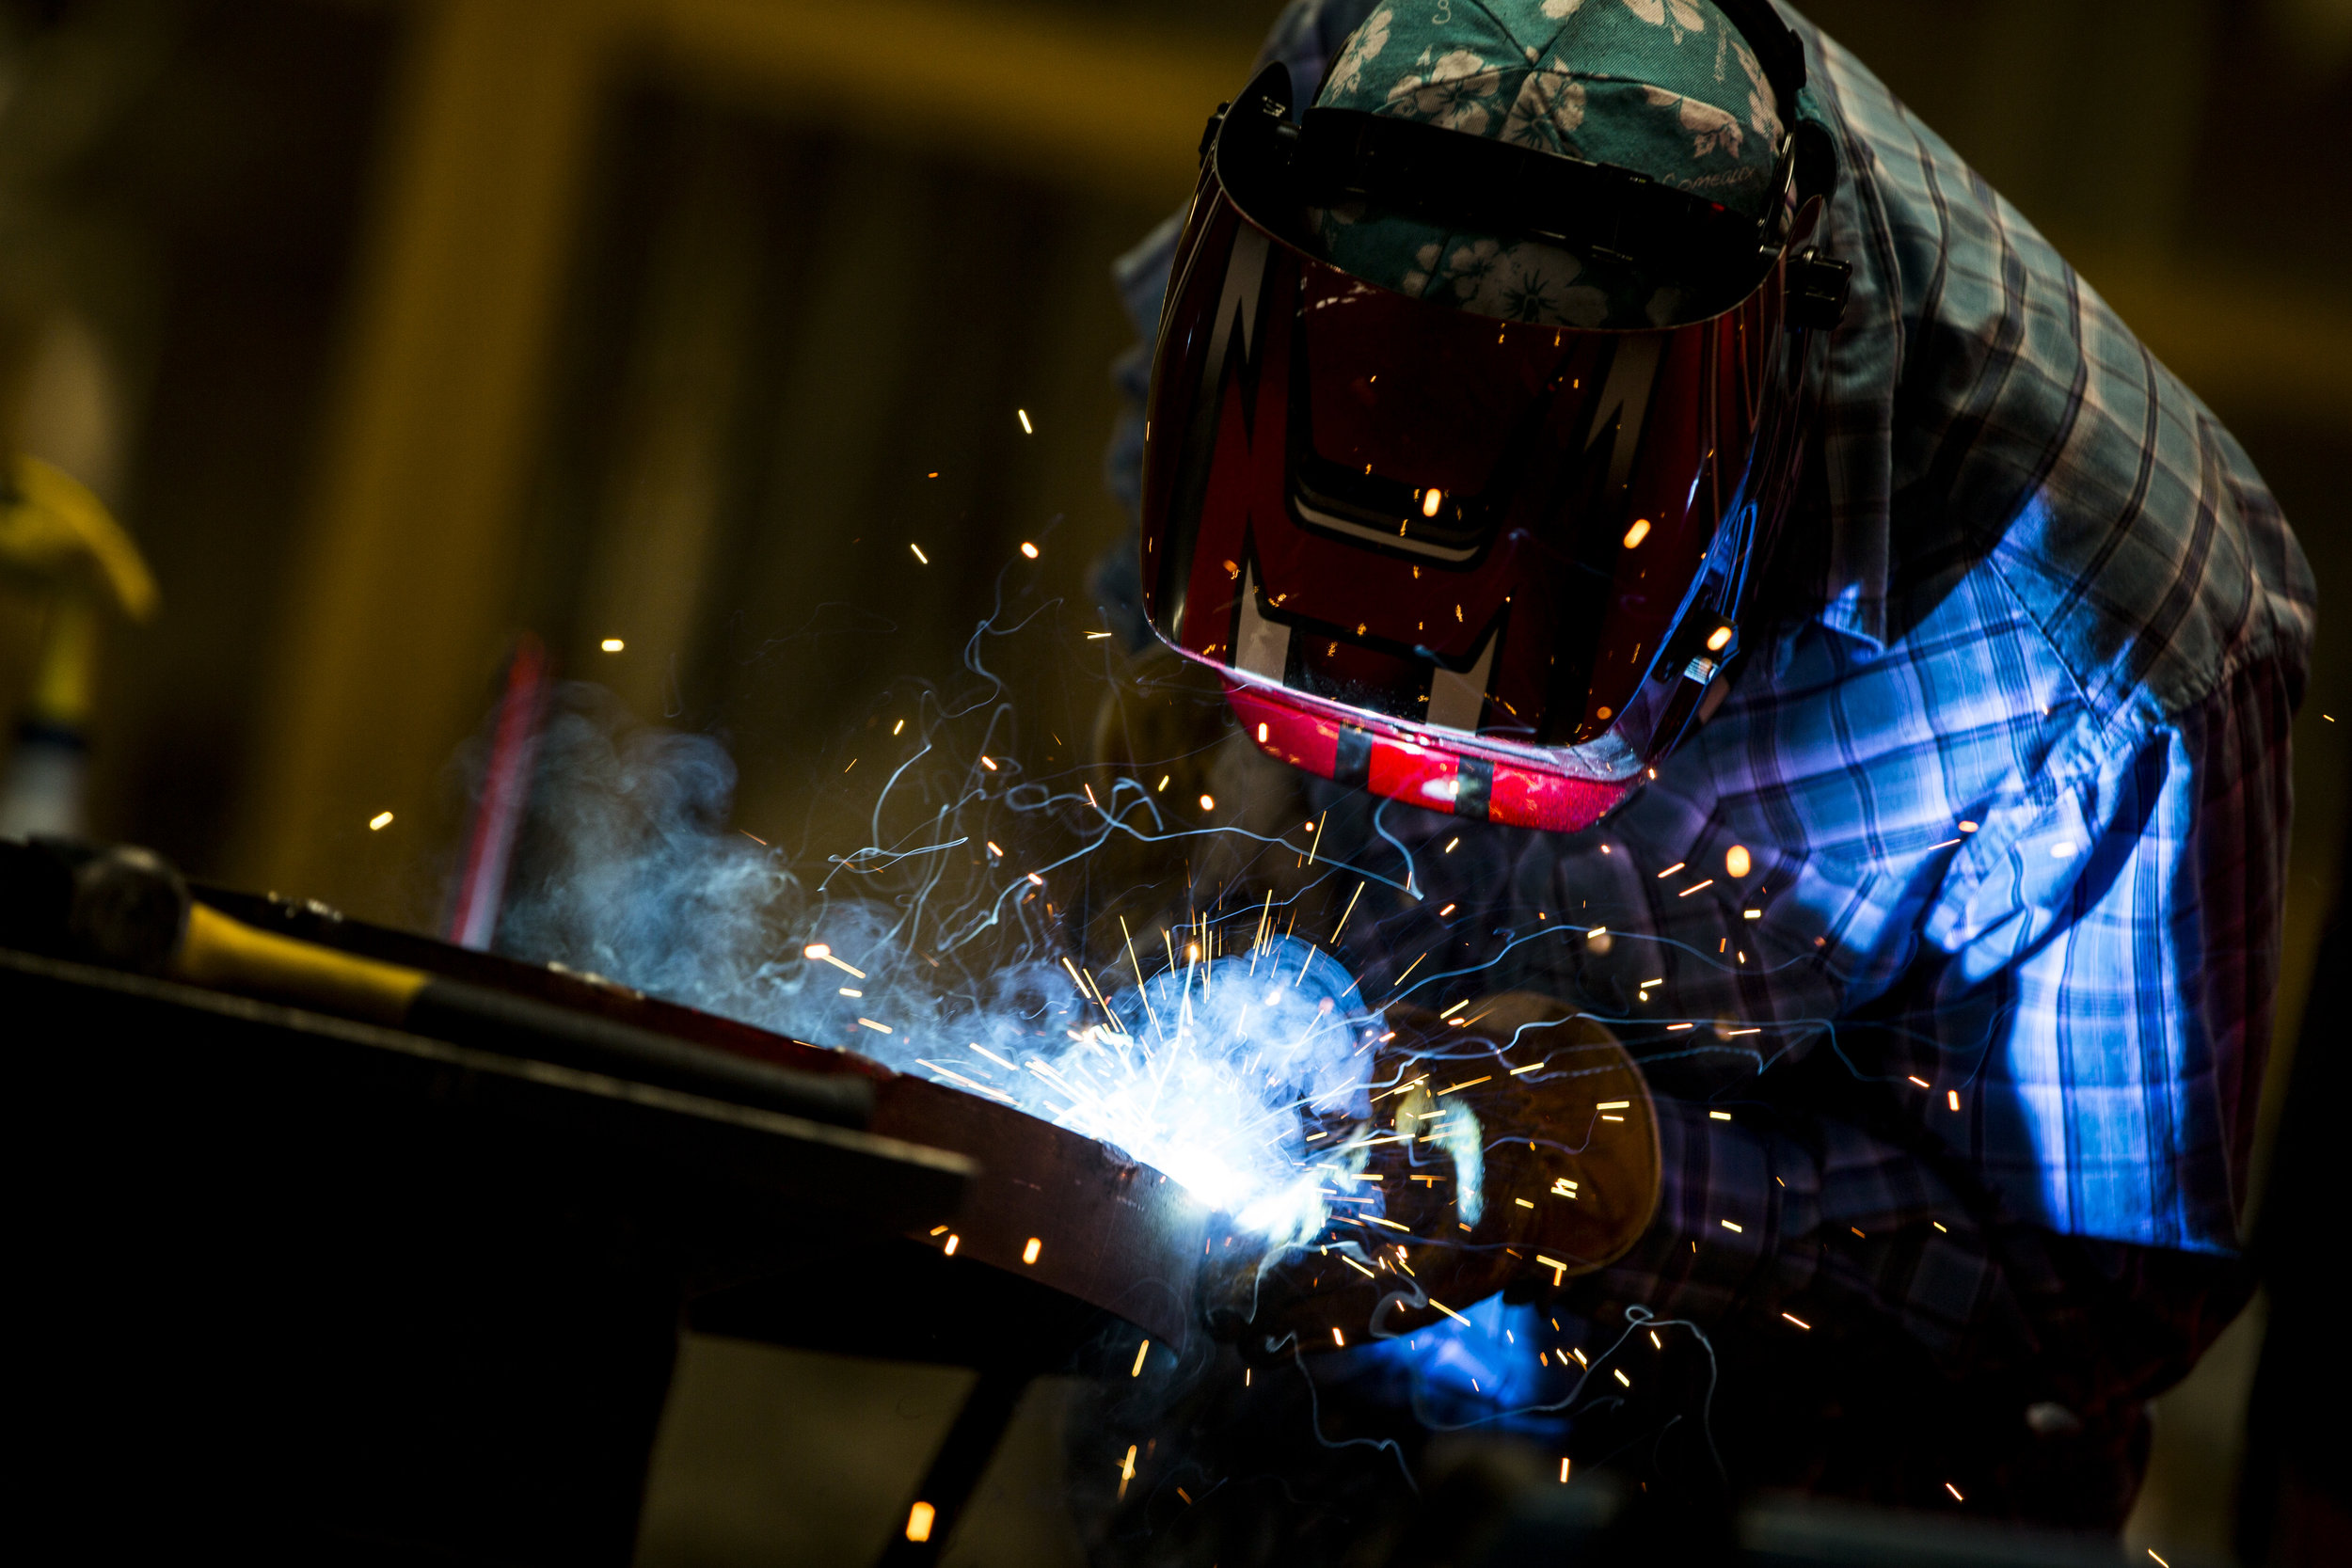 Ryan Bieman works on some welding at Gist Specialties, which makes custom wood and metal fabrications, in North Las Vegas on Wednesday, May 10, 2017. Patrick Connolly Las Vegas Review-Journal @PConnPie